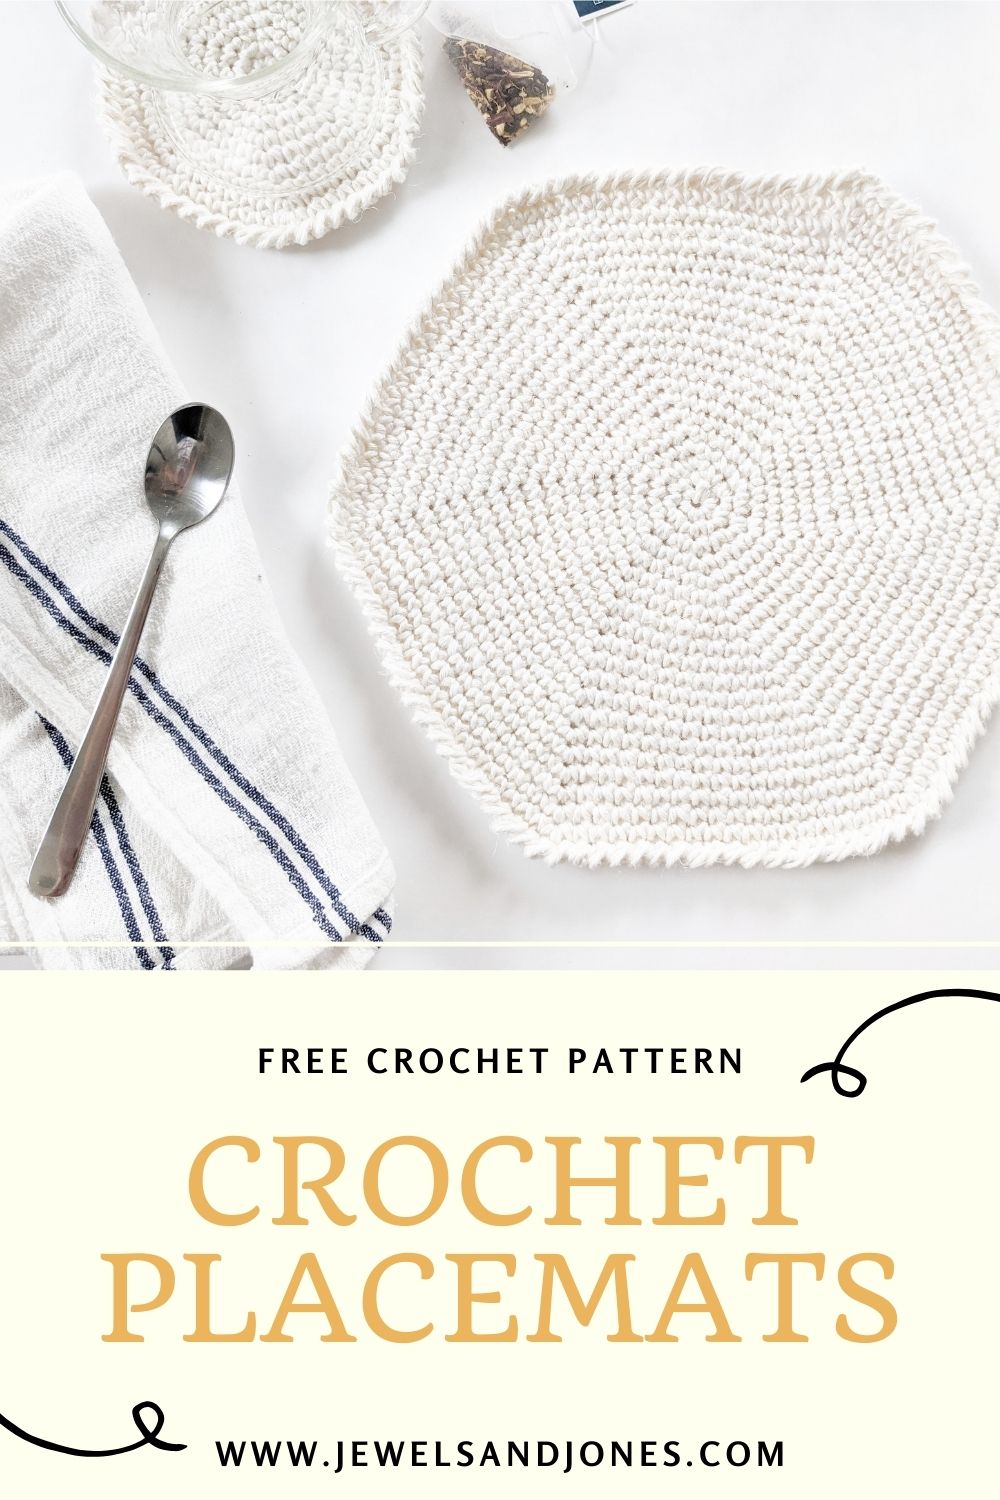 a pinnable image of the free crochet placemat pattern